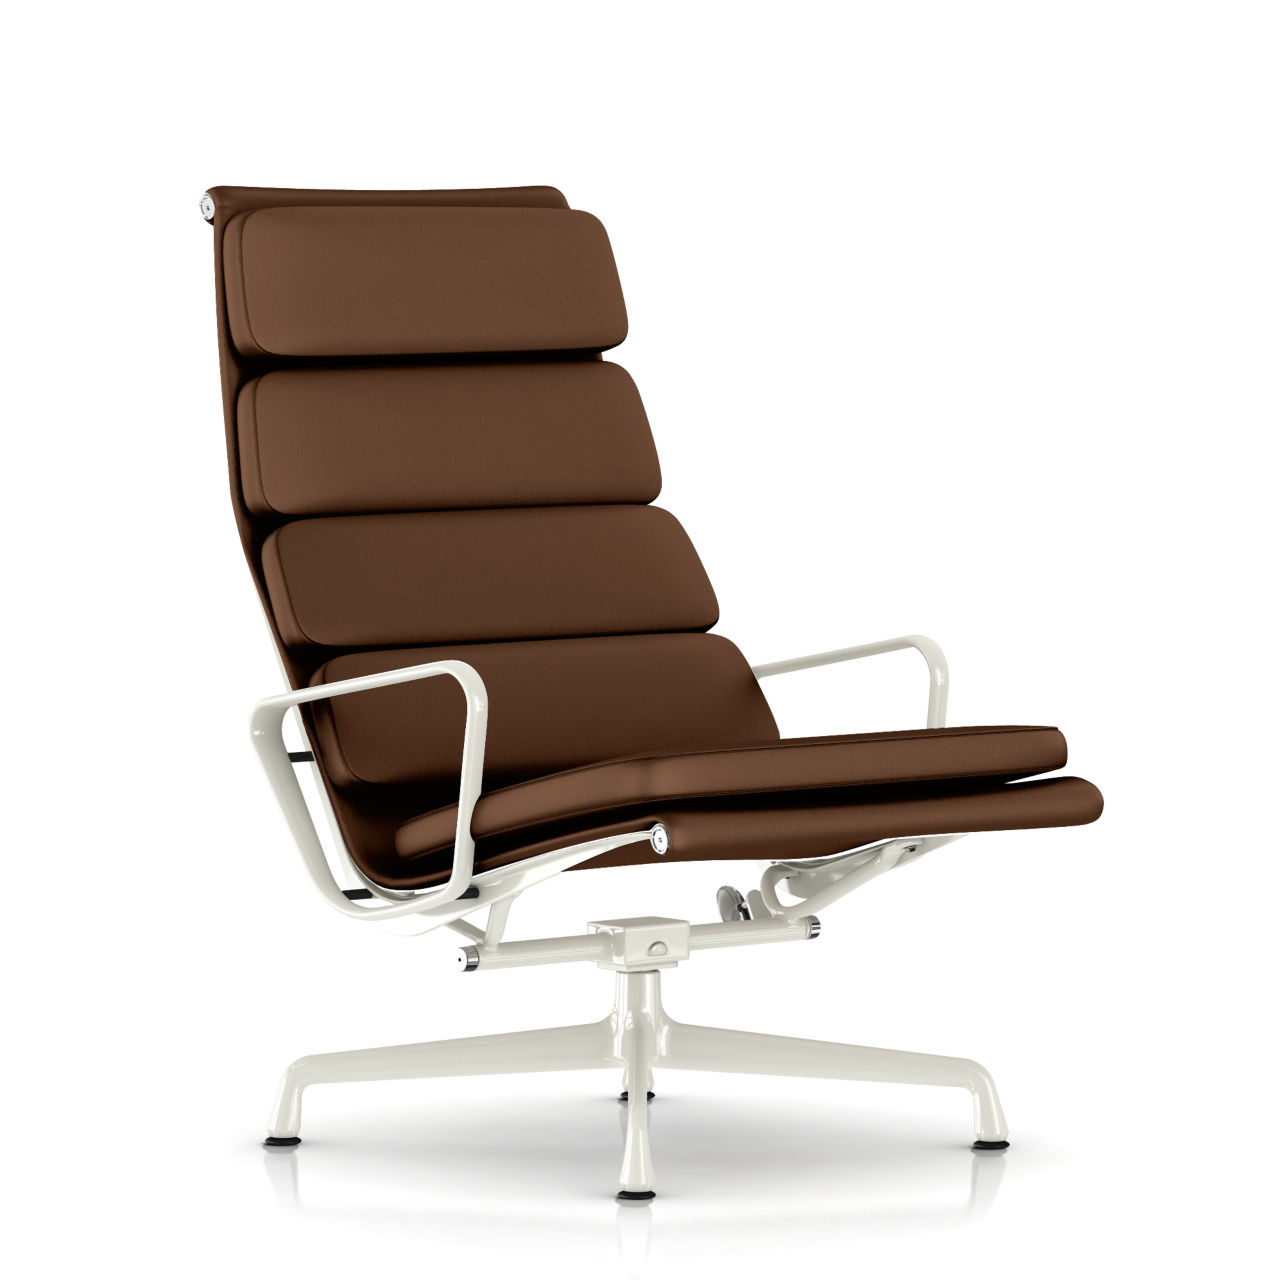 Eames Soft Pad Lounge Chair in Truffle Leather by Herman Miller